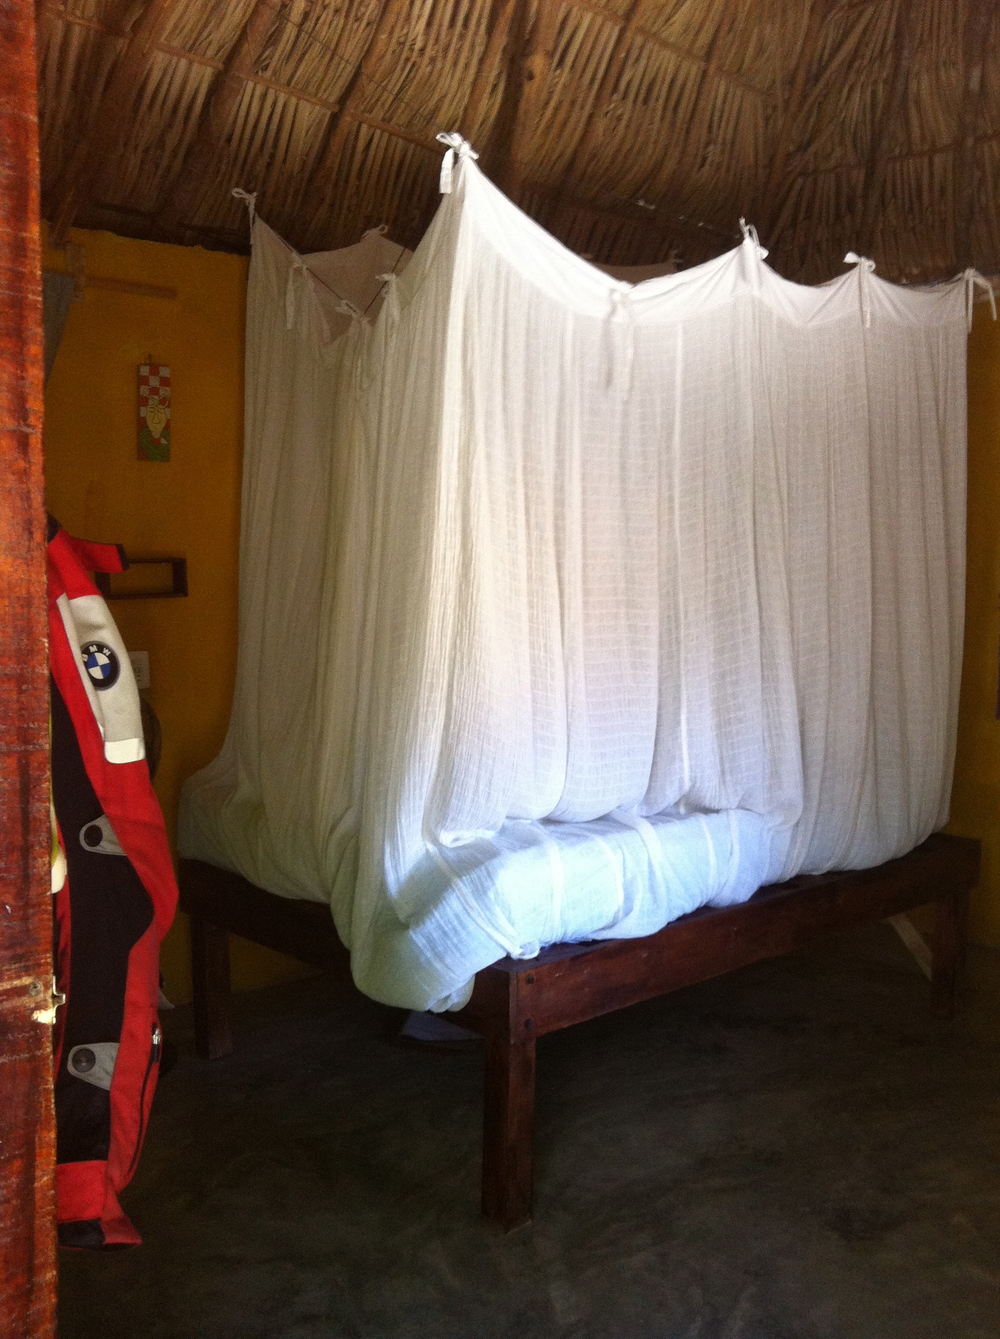 The bungalow had a double bed with a mozzie net, toilet and cold water shower.